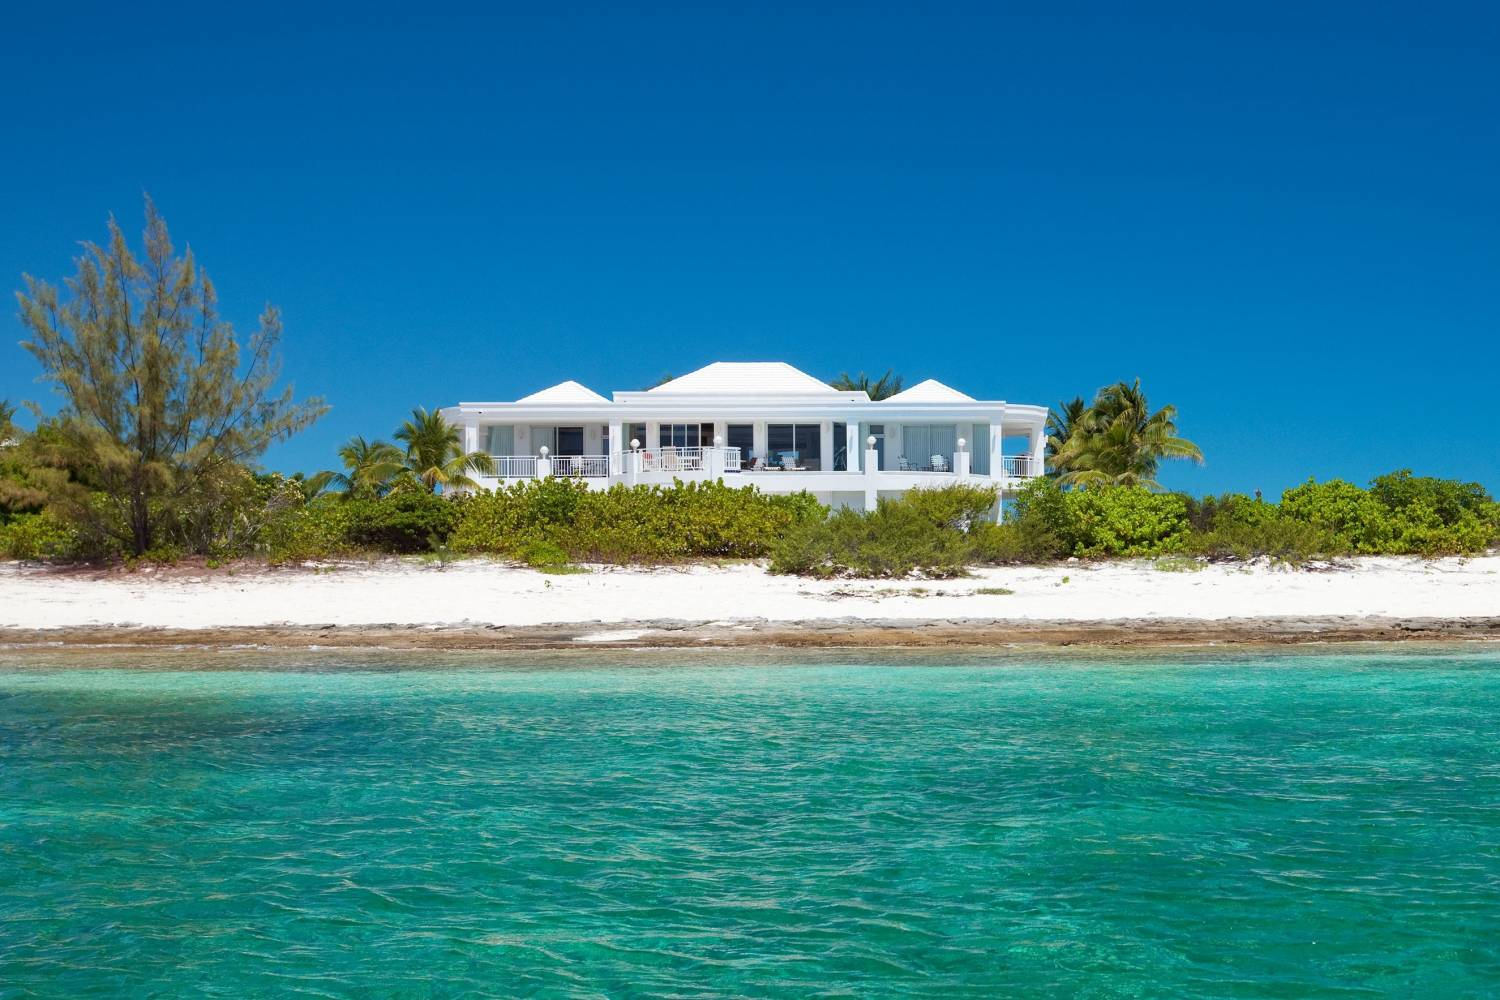 If you enjoy good food and great service, book a Private Chef in Turtle Cove, Turks and Caicos, header